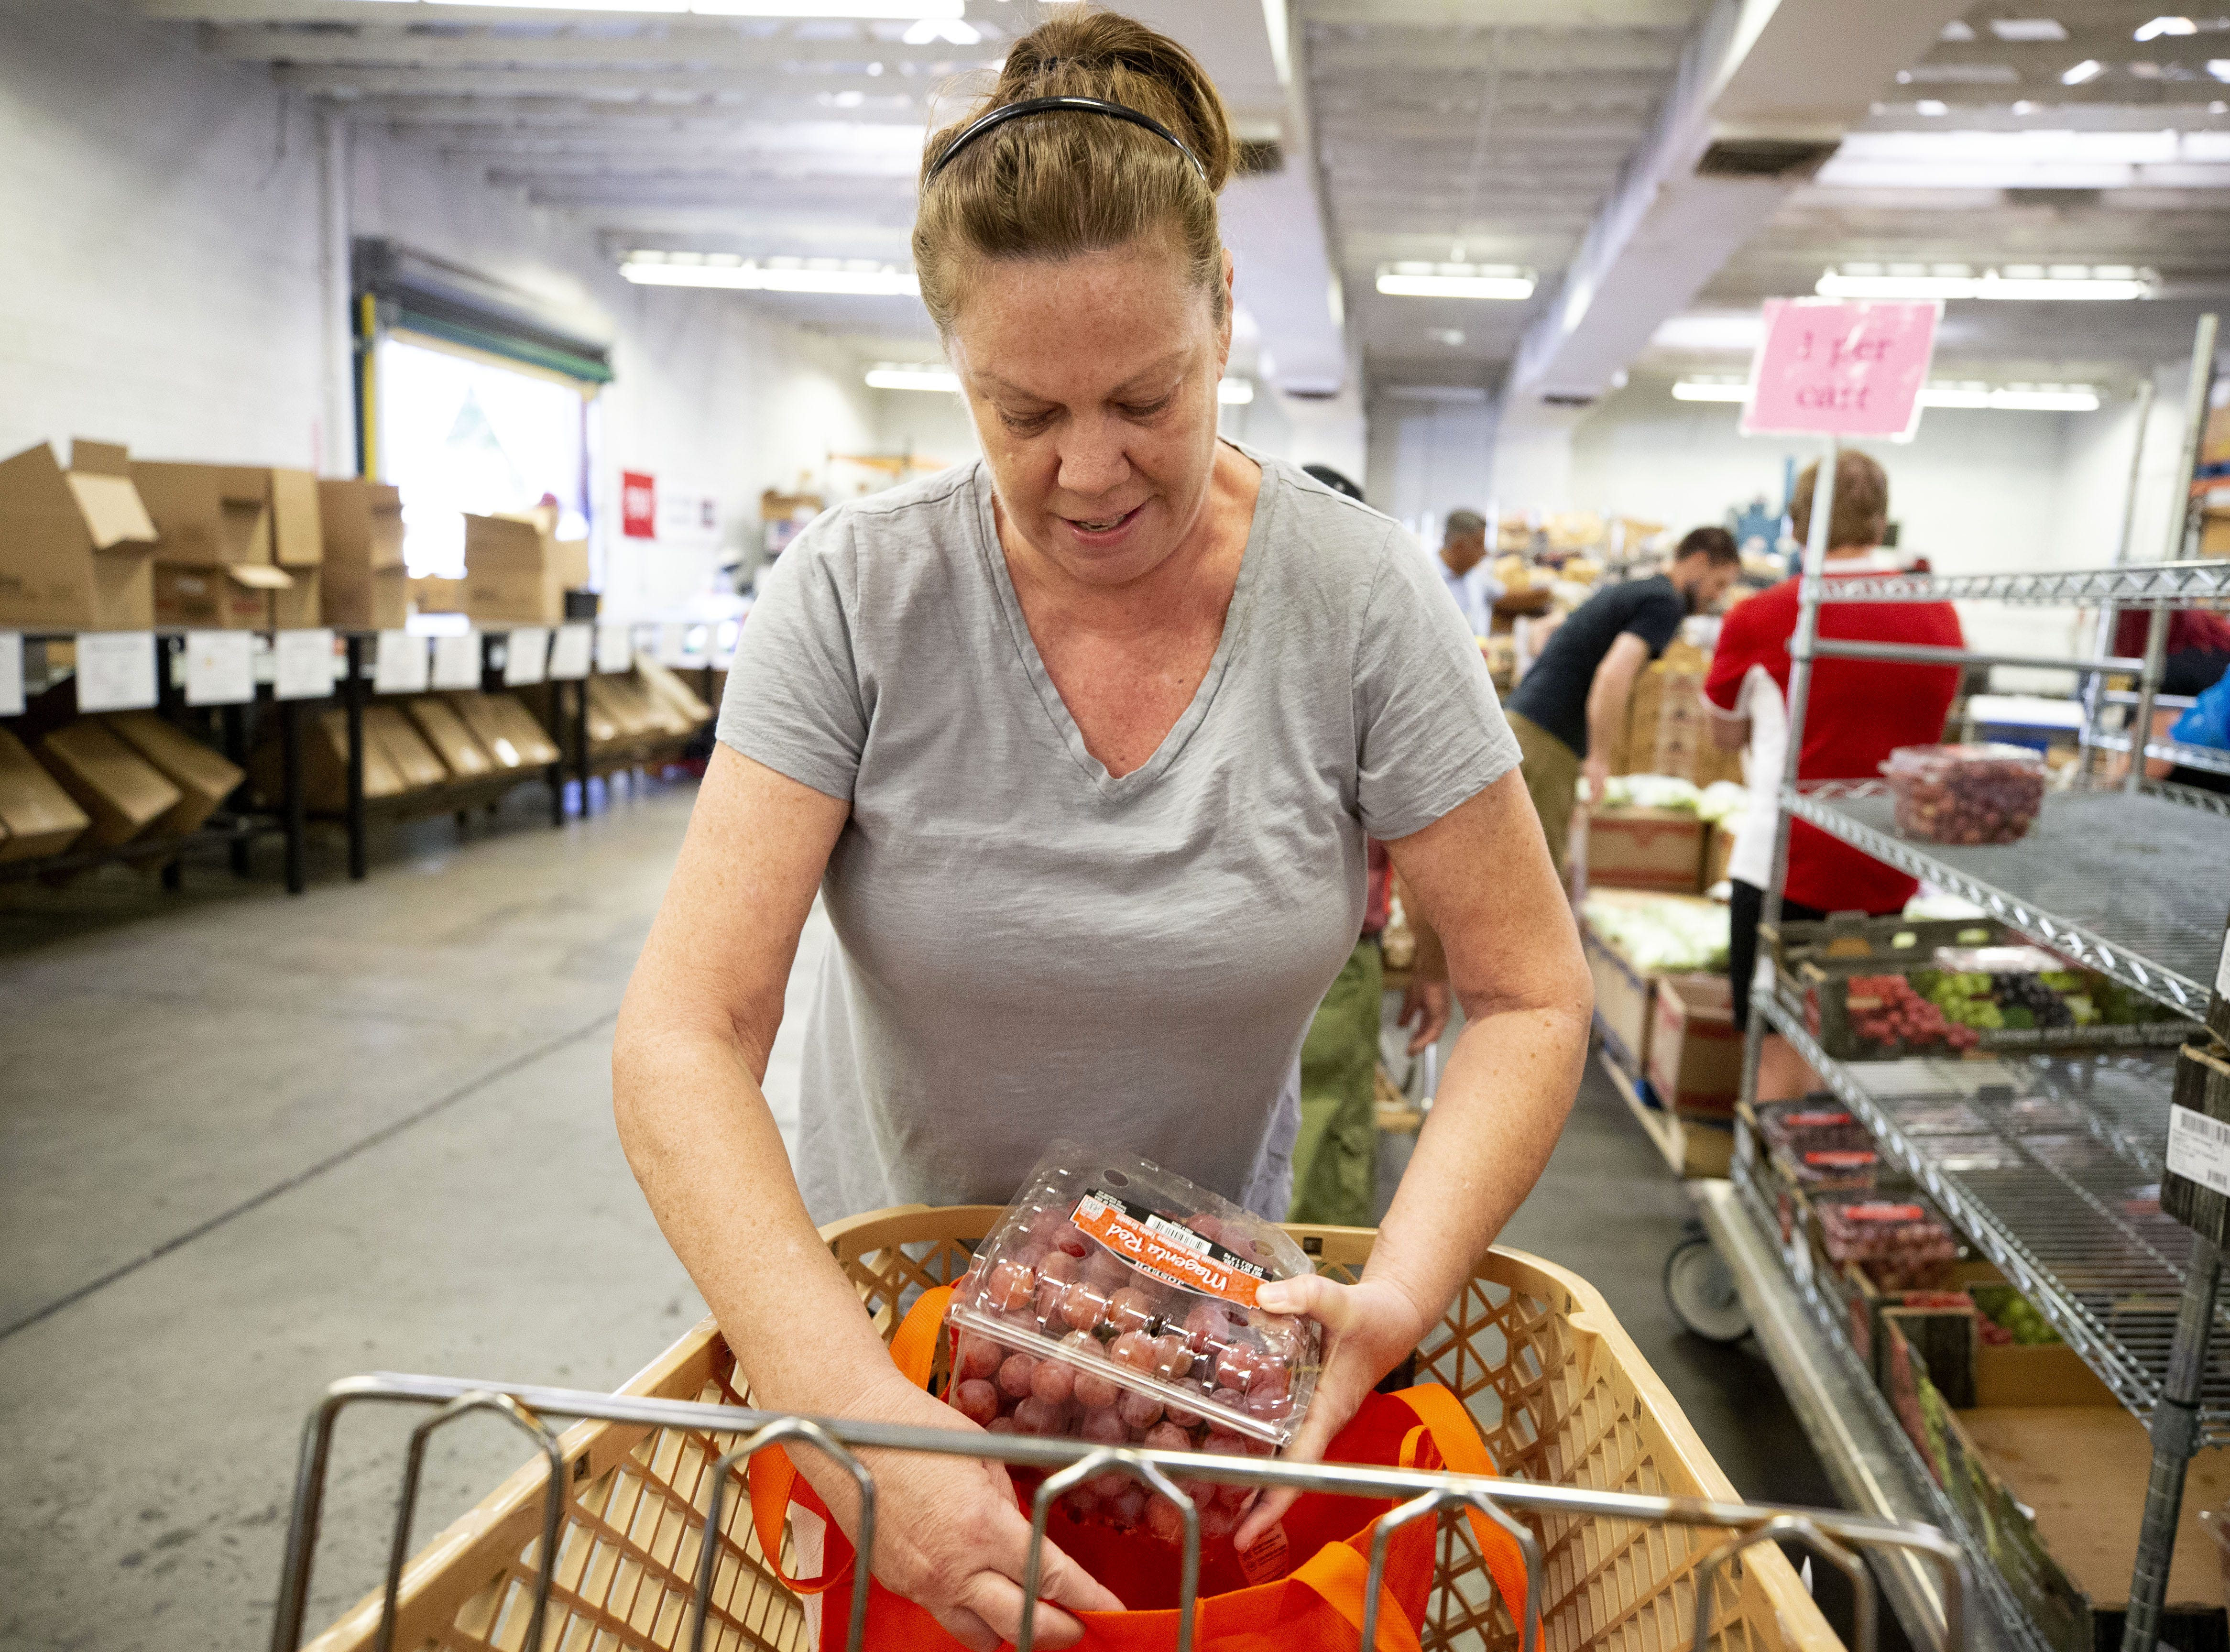 Mary Buchanan, of Mesa, receive food from United Food Bank in Mesa on September 28, 2018.